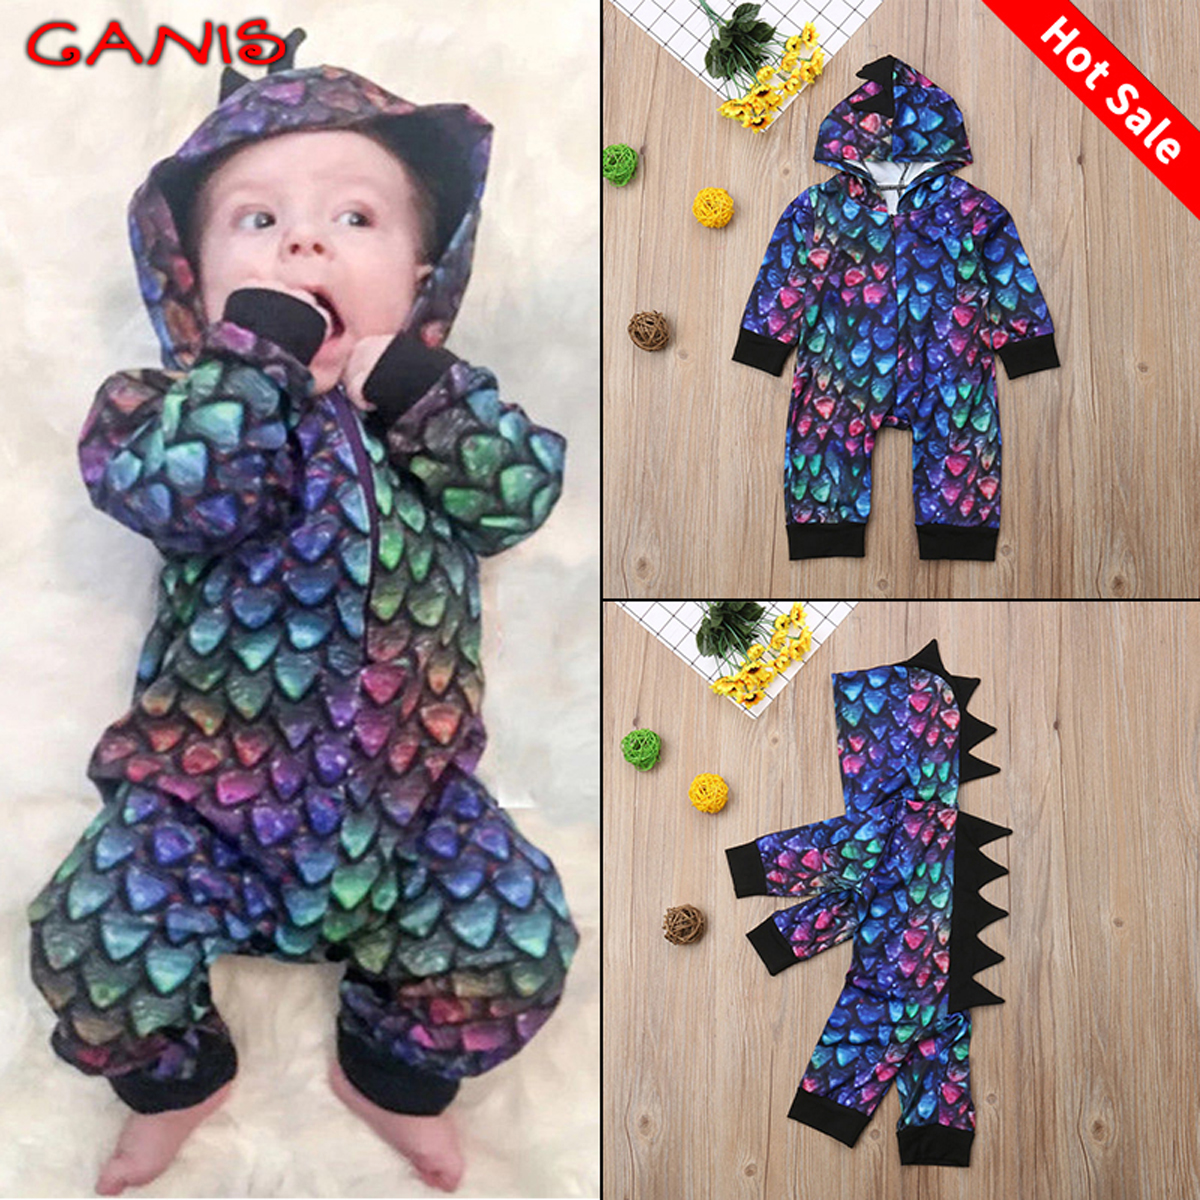 cdee32364 Details about USA Stock Newborn Baby Boy Girl Romper Hoodies Jumpsuit  Bodysuit Outfits Clothes